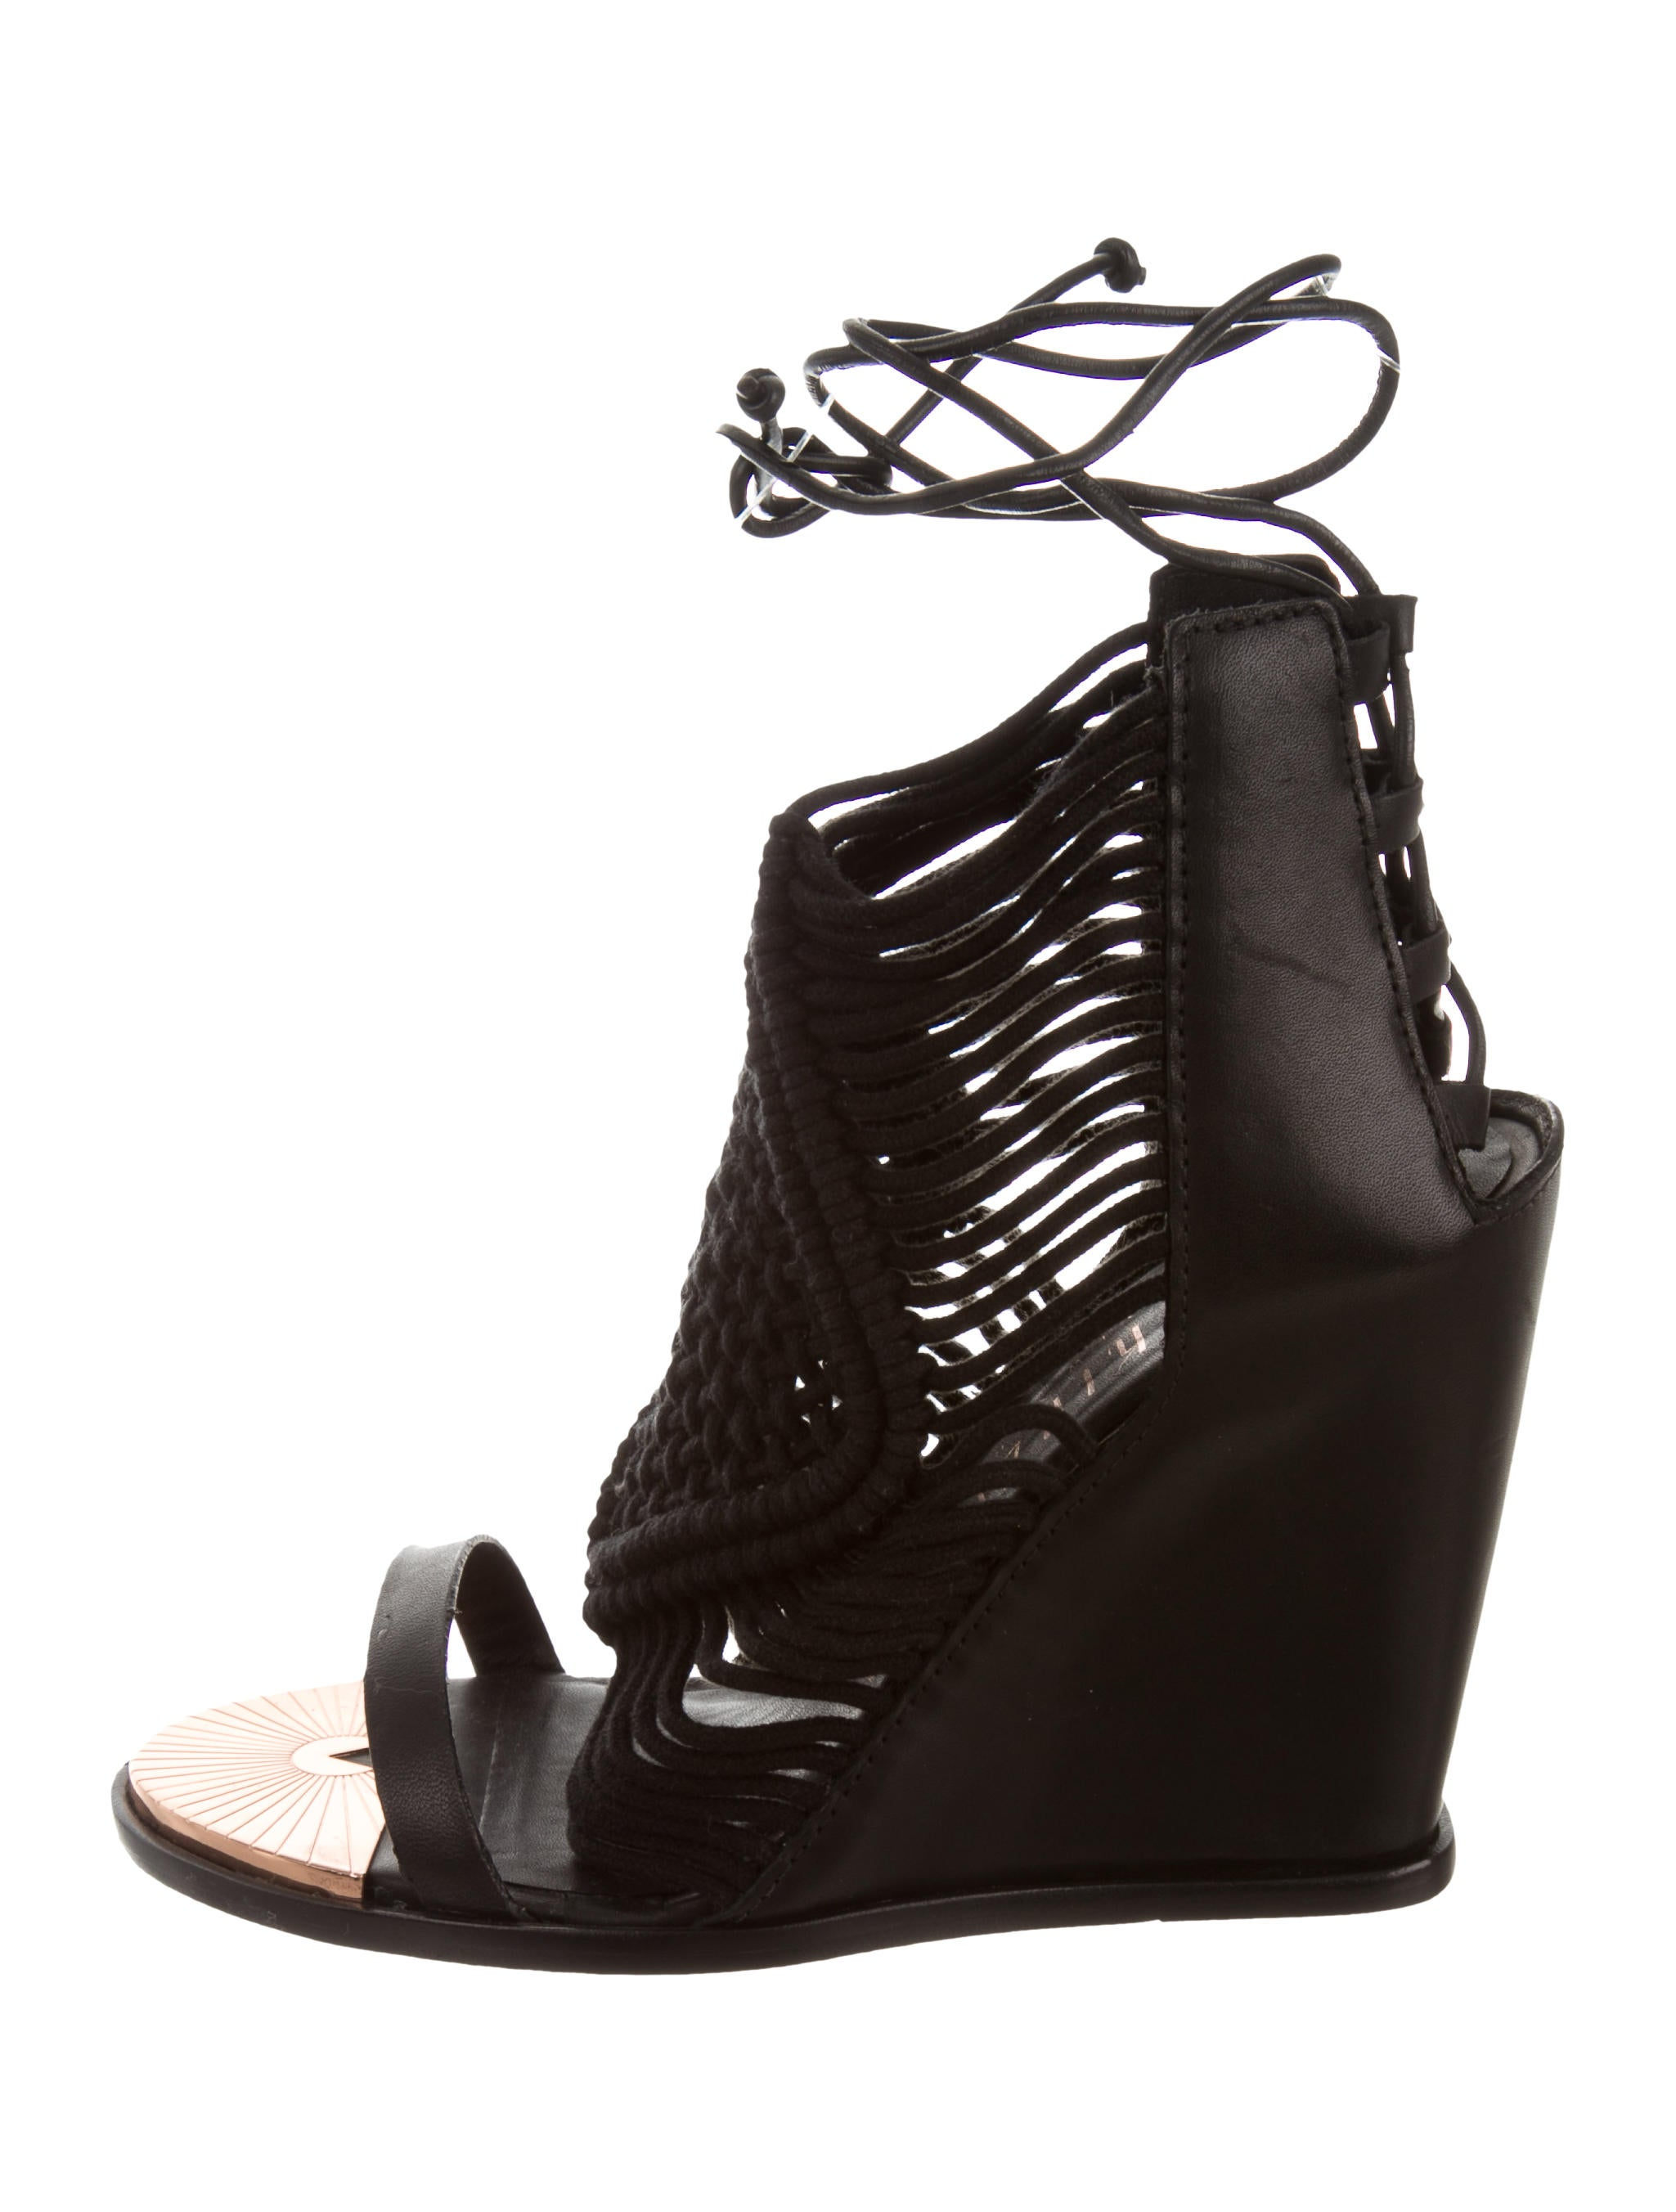 Ivy Kirzhner Mykono Wedge Sandals w/ Tags pictures with credit card cheap price 2014 newest cheap price fAQFuIquE